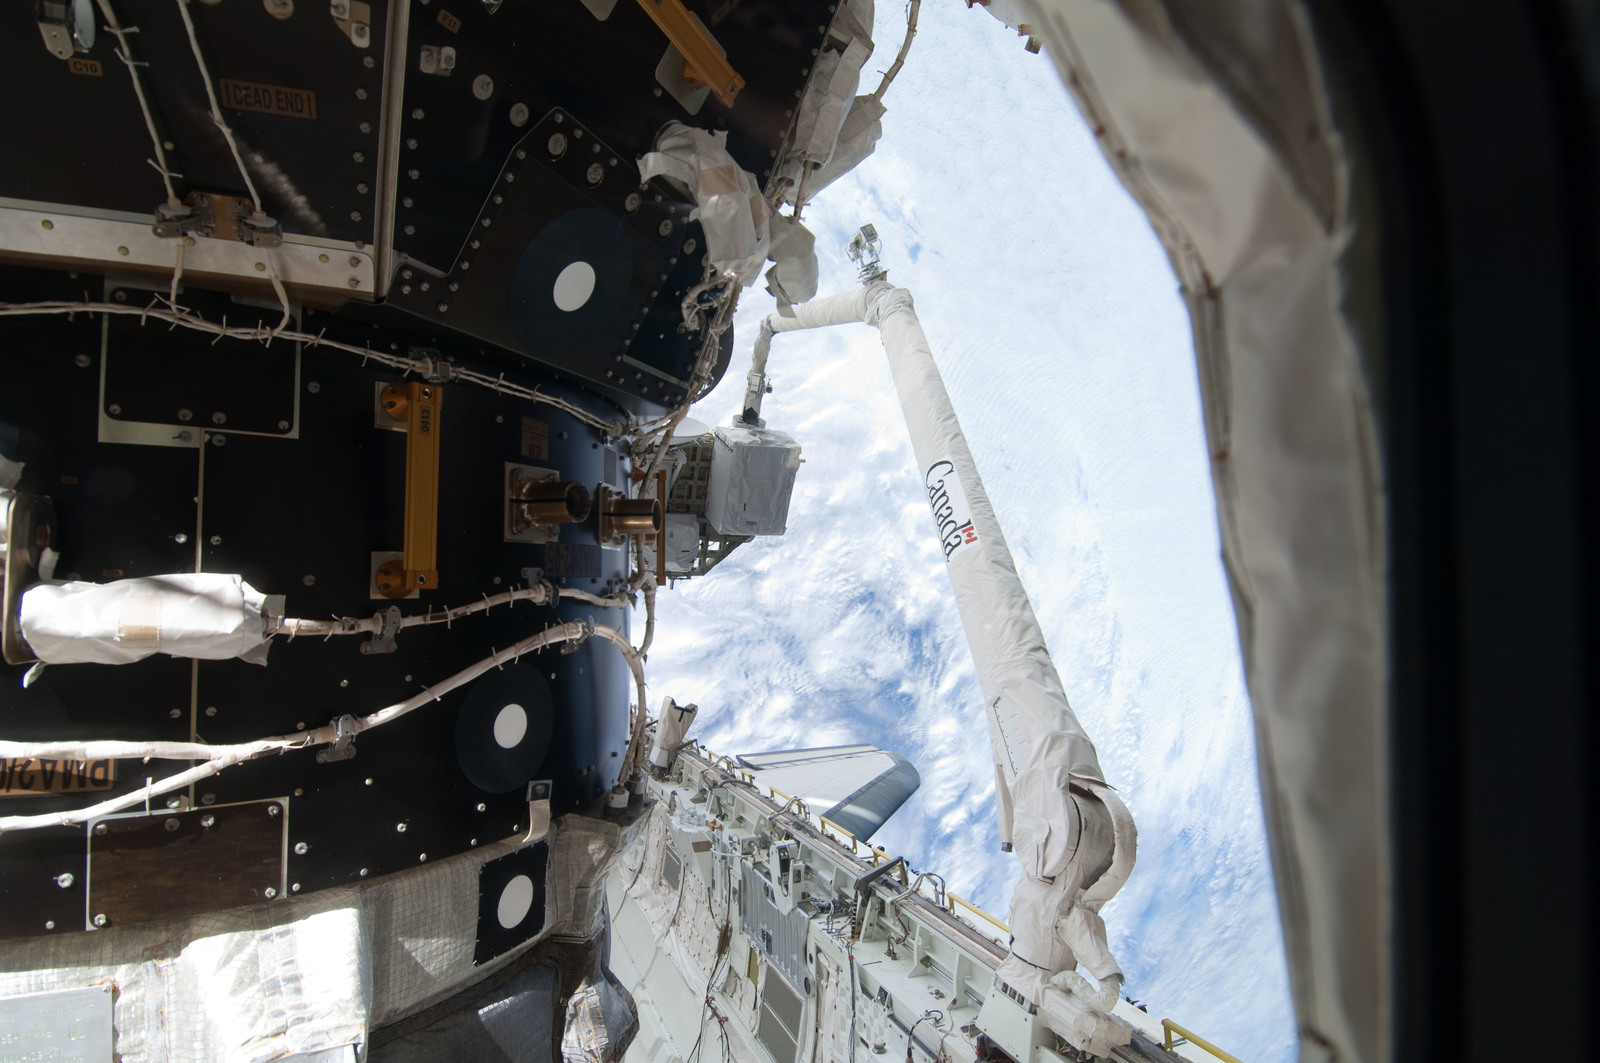 S127E006924 - STS-127 - SRMS unberths the ICC-VLD during STS-127 / Expedition 20 Joint Operations